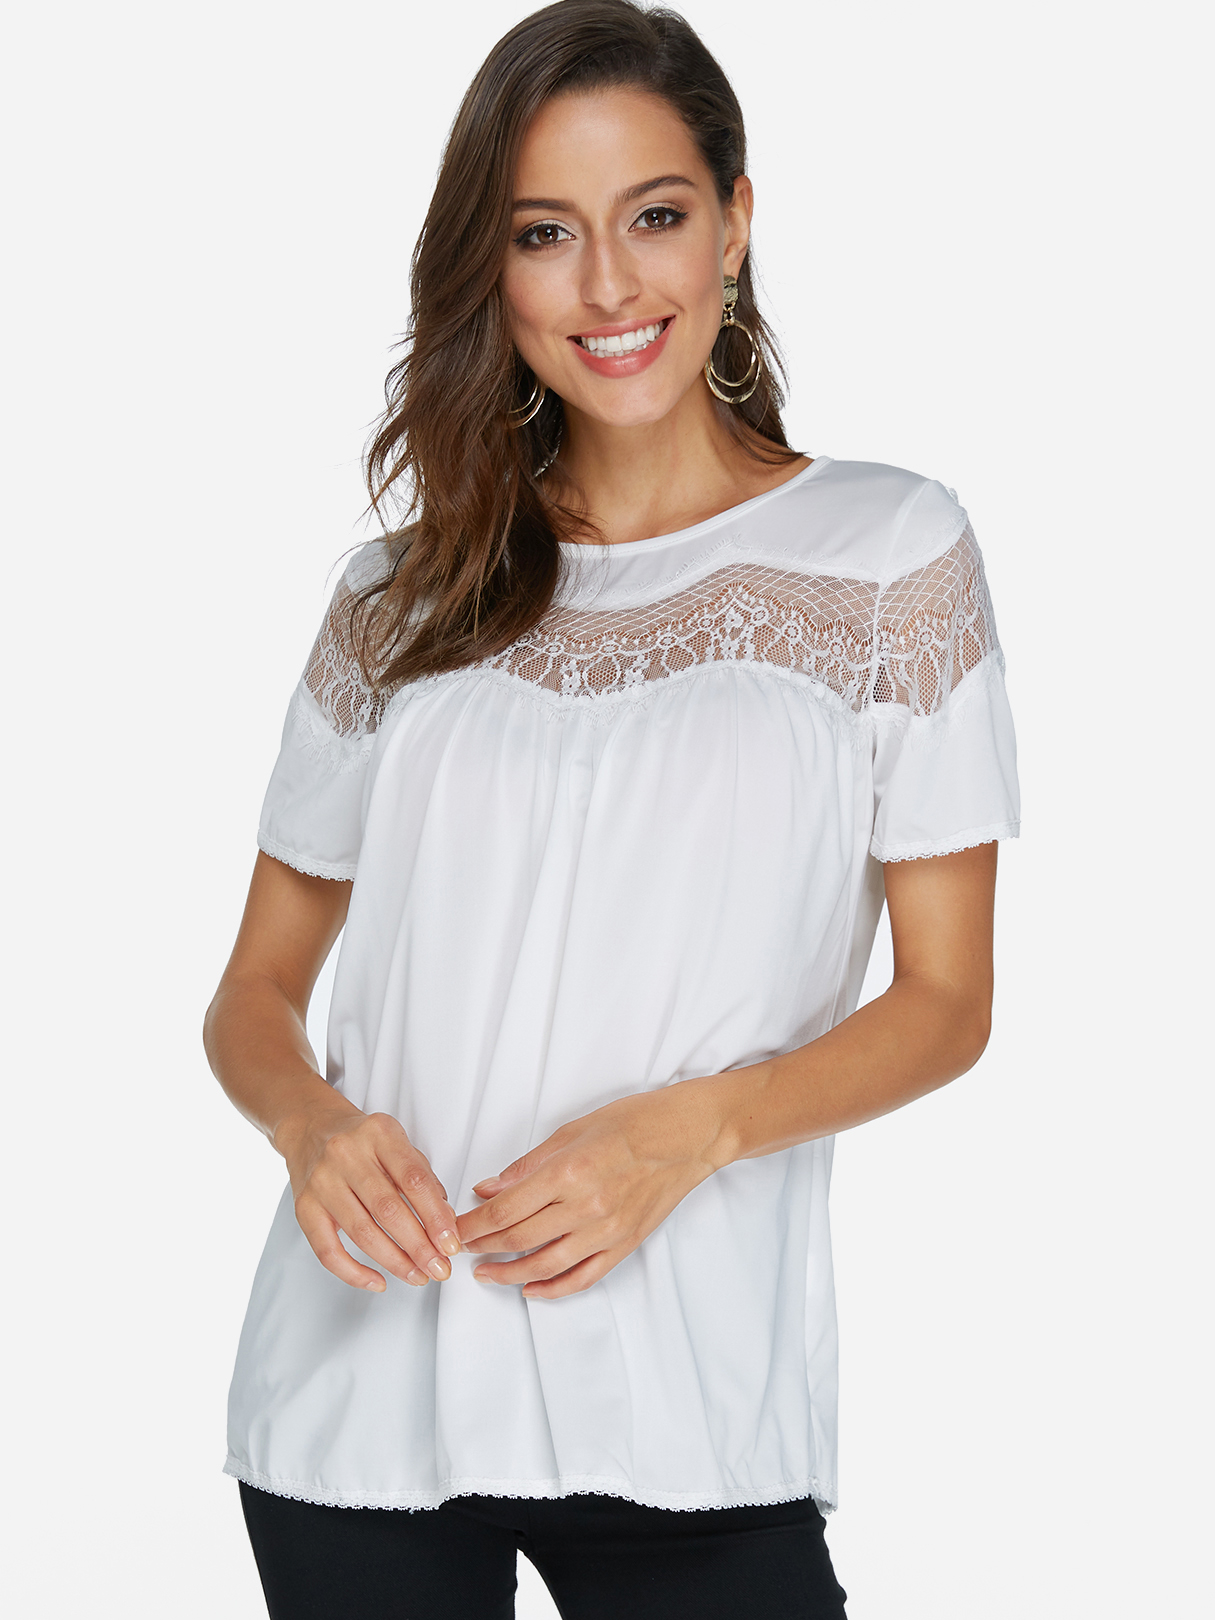 White Lace Insert Short Sleeves Top